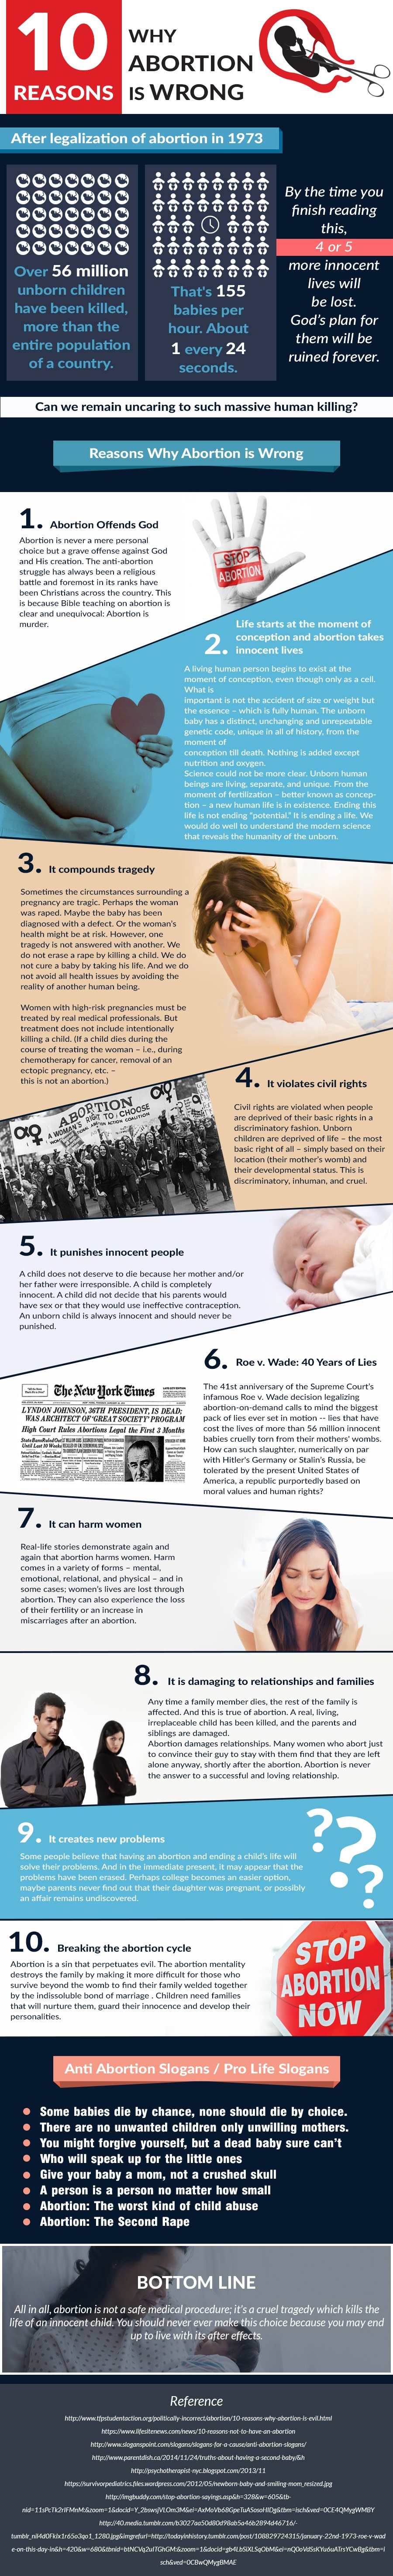 10-Reasons-Why-Abortion-is-wrong